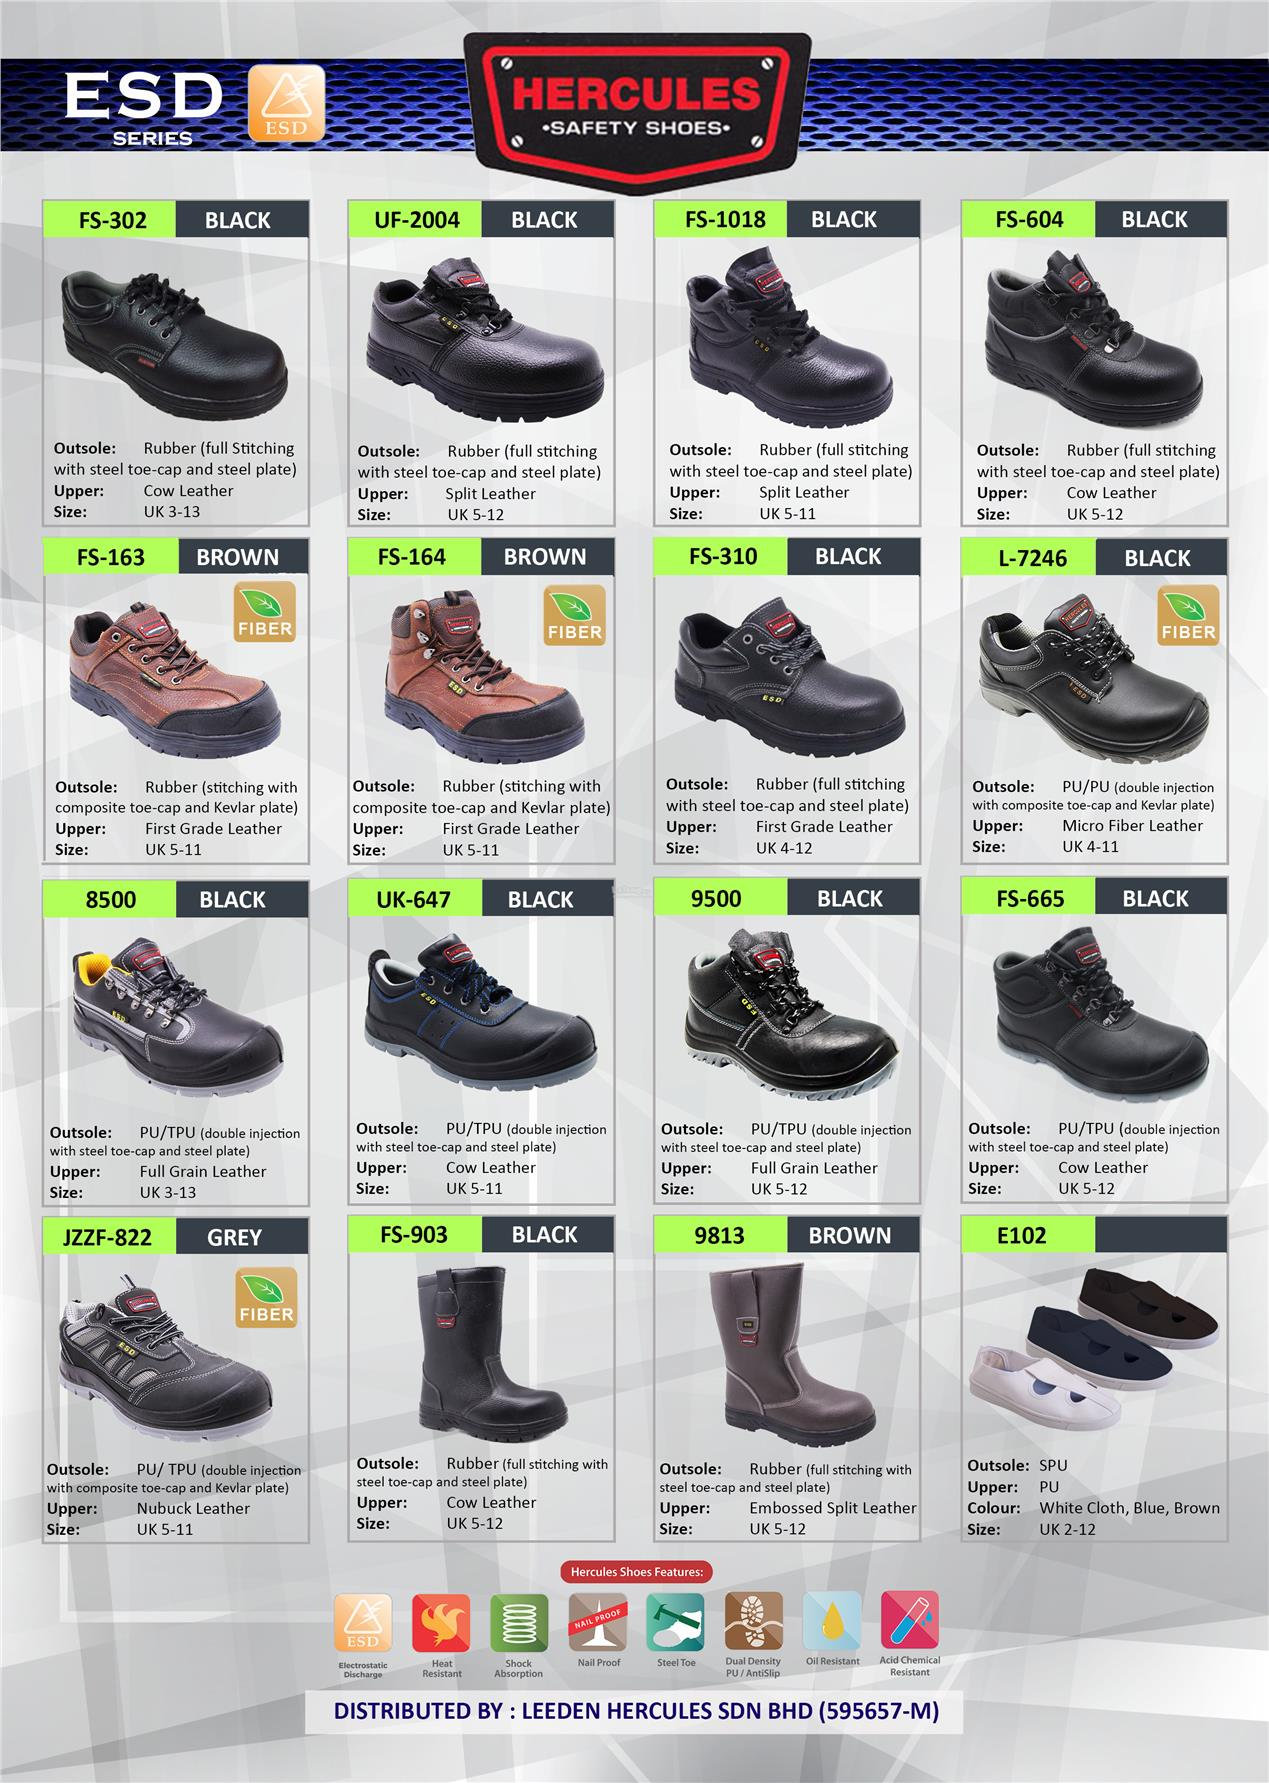 Hercules Safety Shoes Cow Leather Boot Shoes Sizes 3-12 SKU-2204